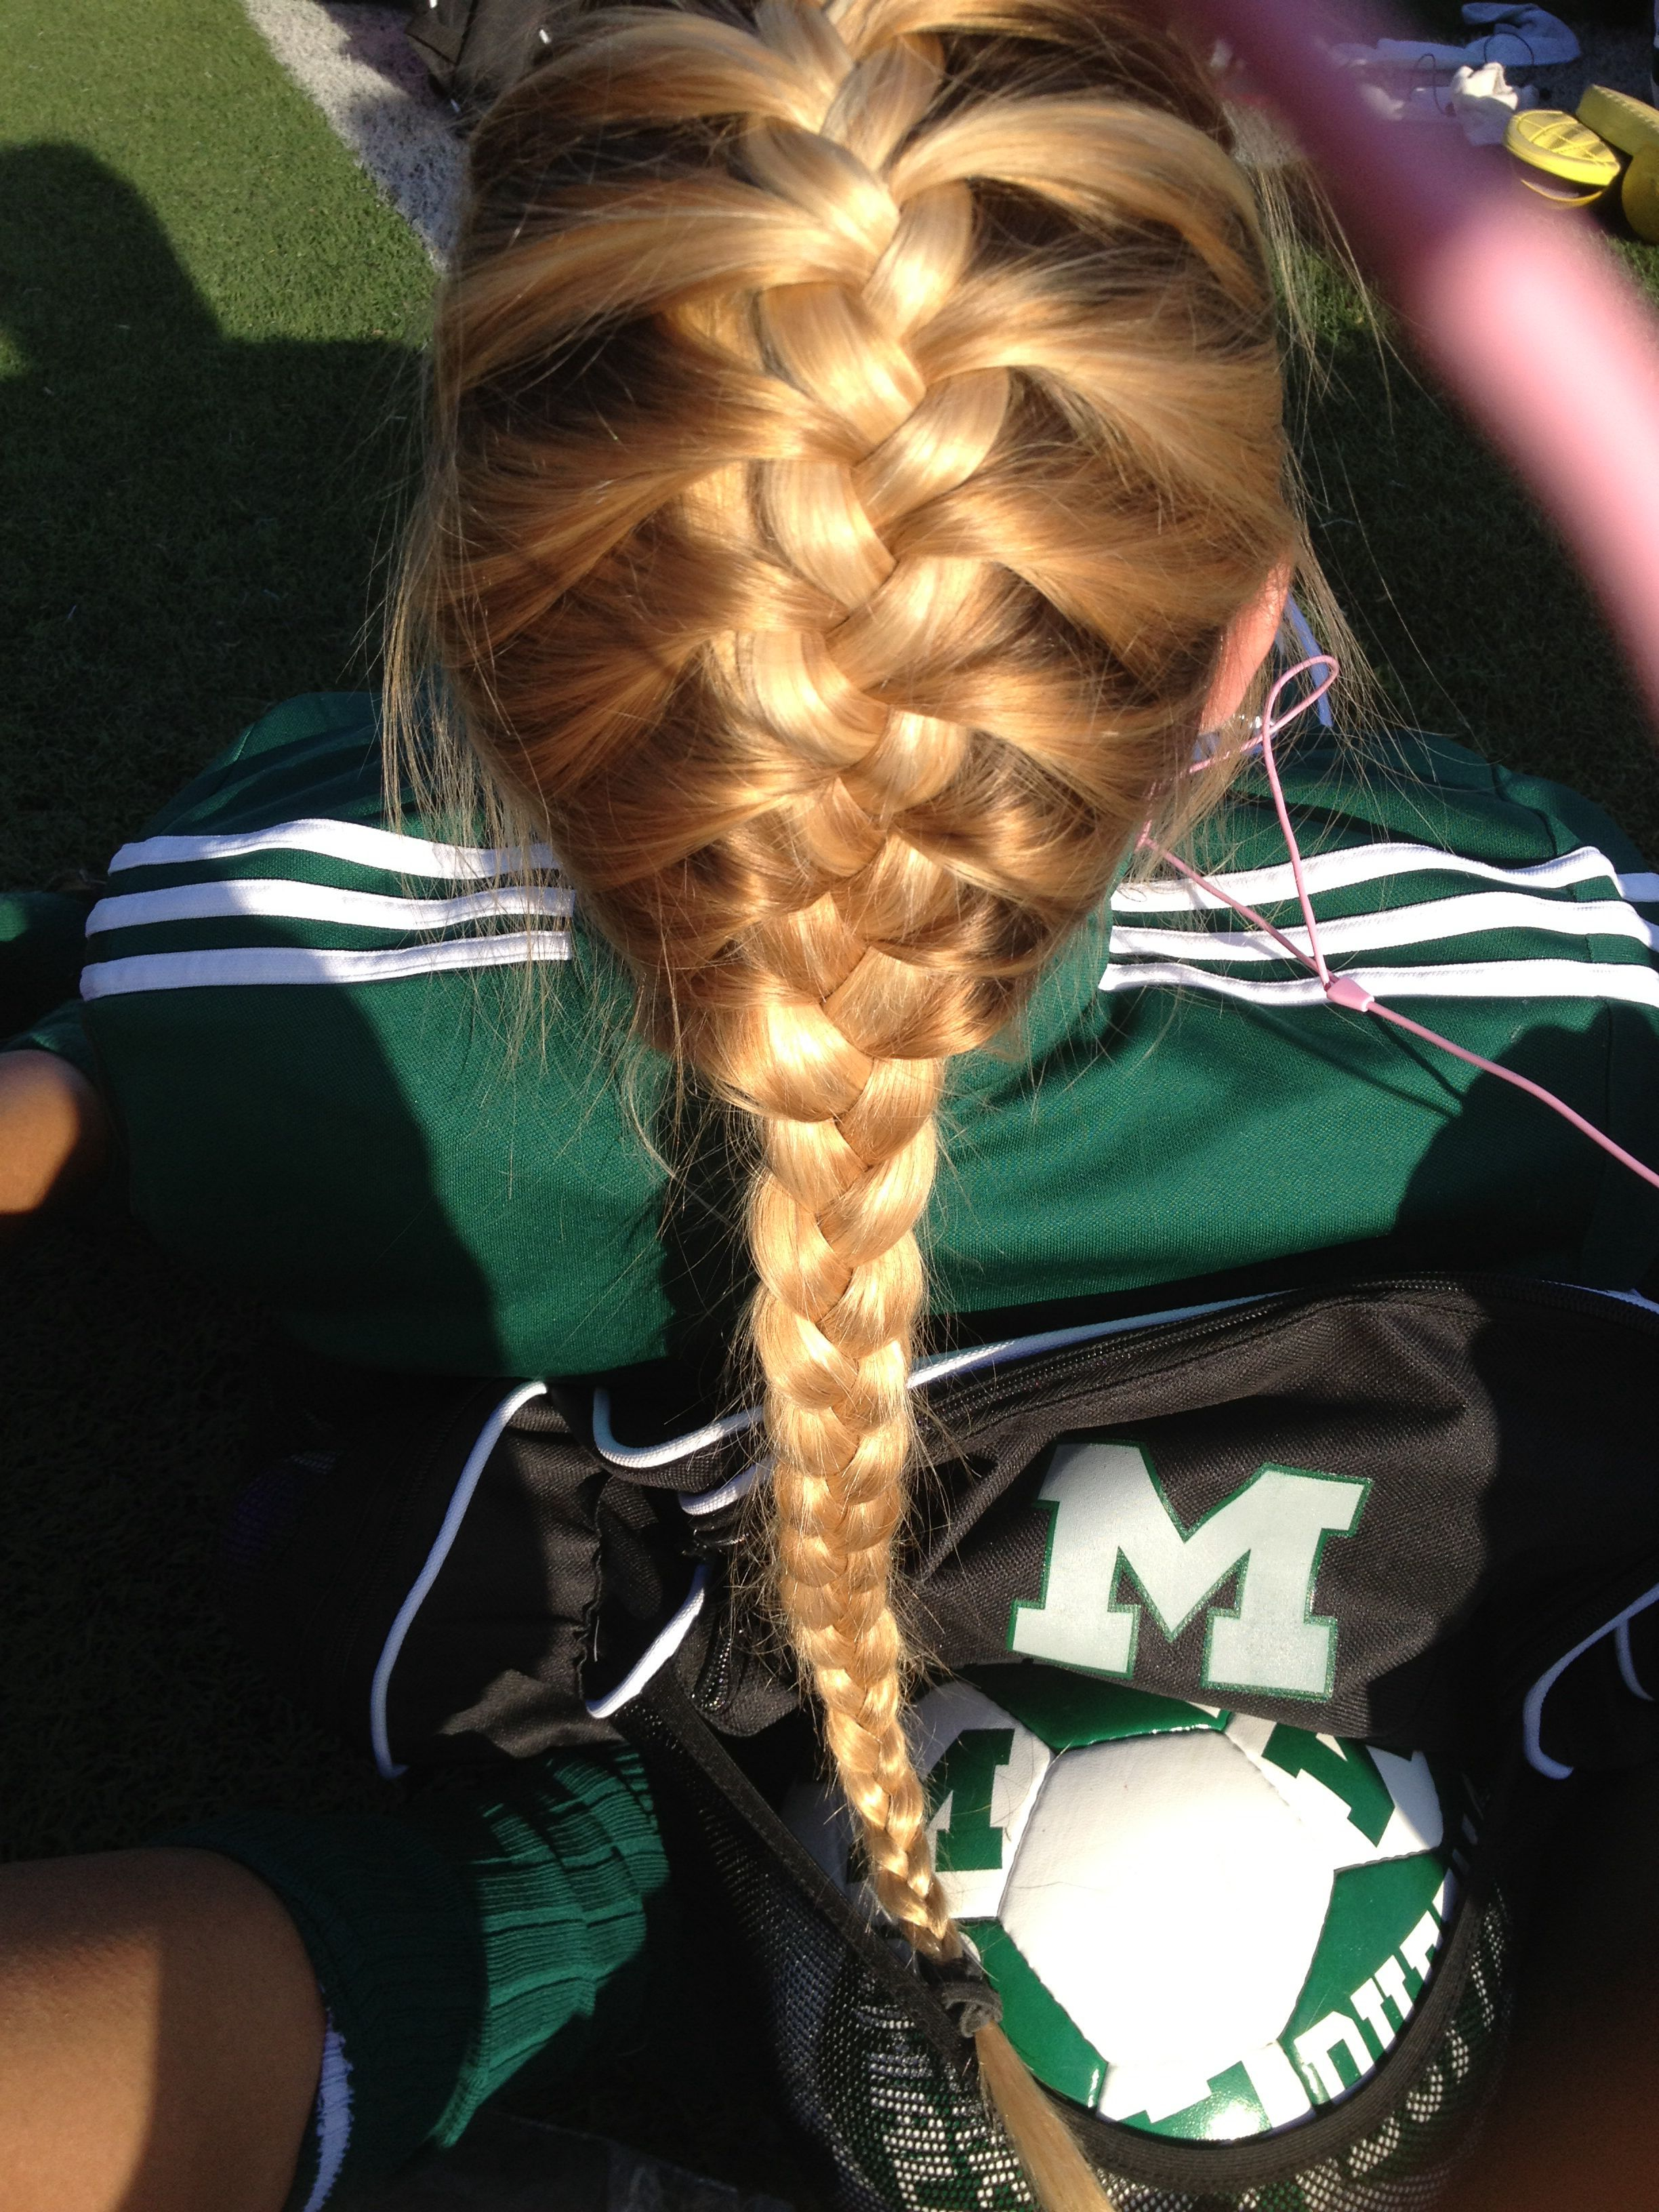 lots of athletes love french braids. try it! #run #braid